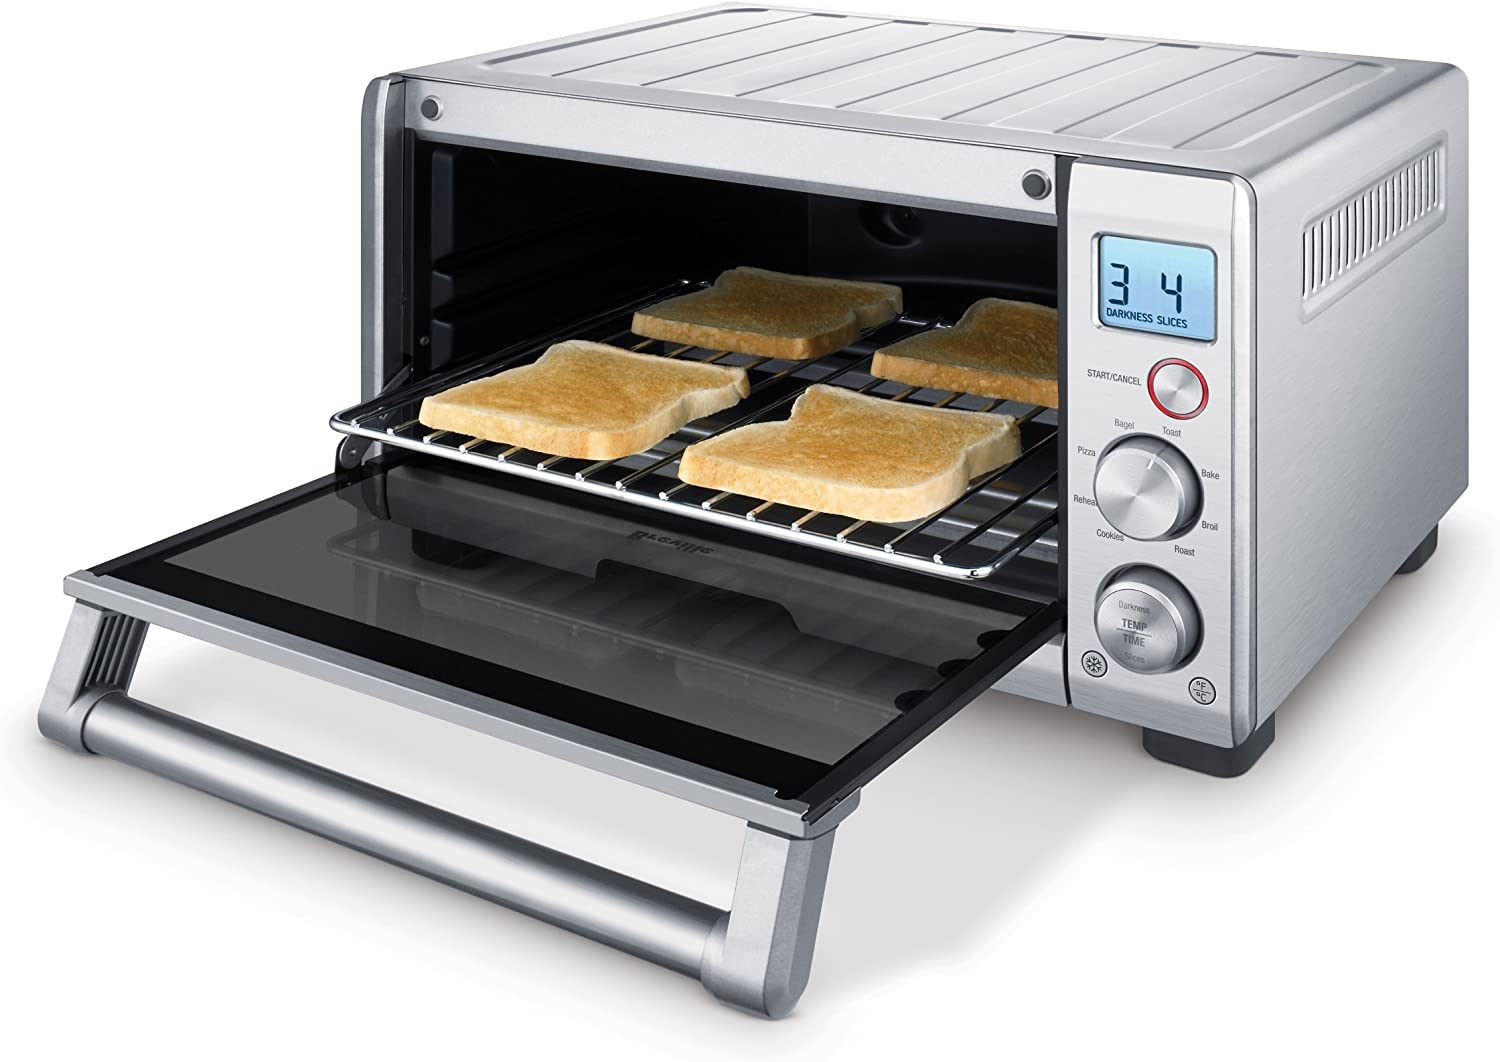 breville BOV650XL compact oven capacity